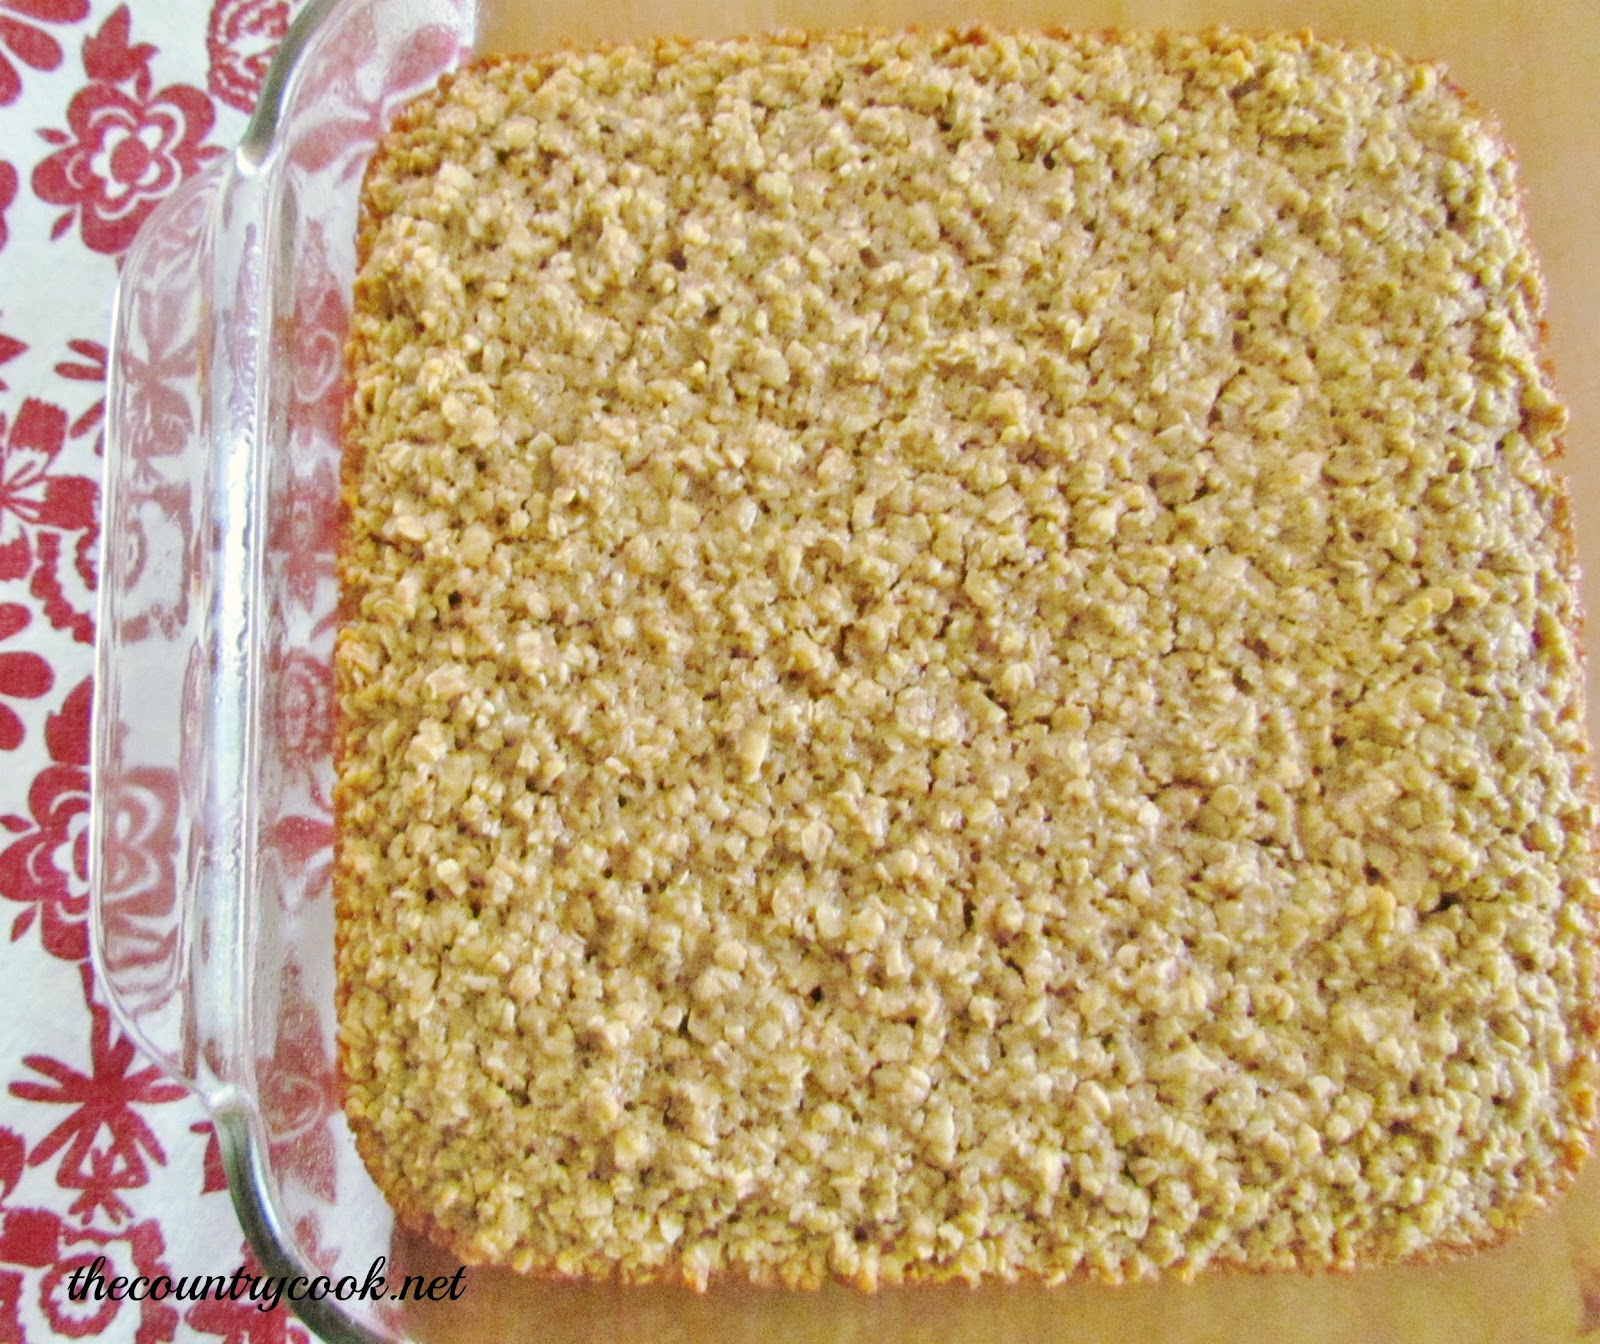 The Country Cook: Maple & Brown Sugar Baked Oatmeal